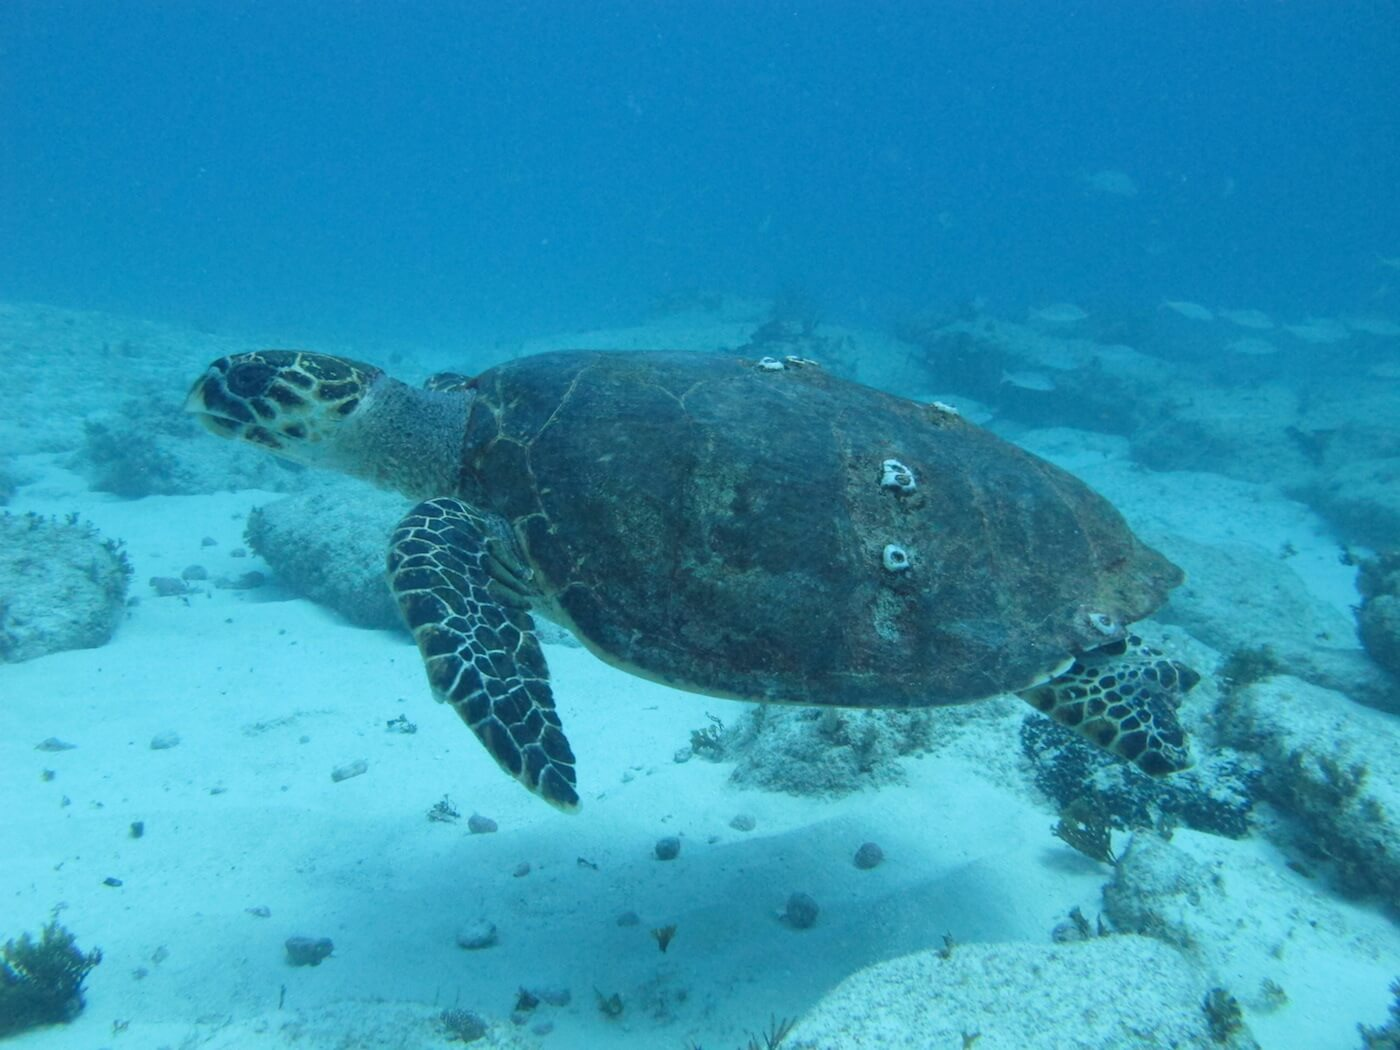 Sea-Turtle-Snorkeling-Scuba-Diving-Tours-Isla-Mujeres-Carey-Dive-Center-2